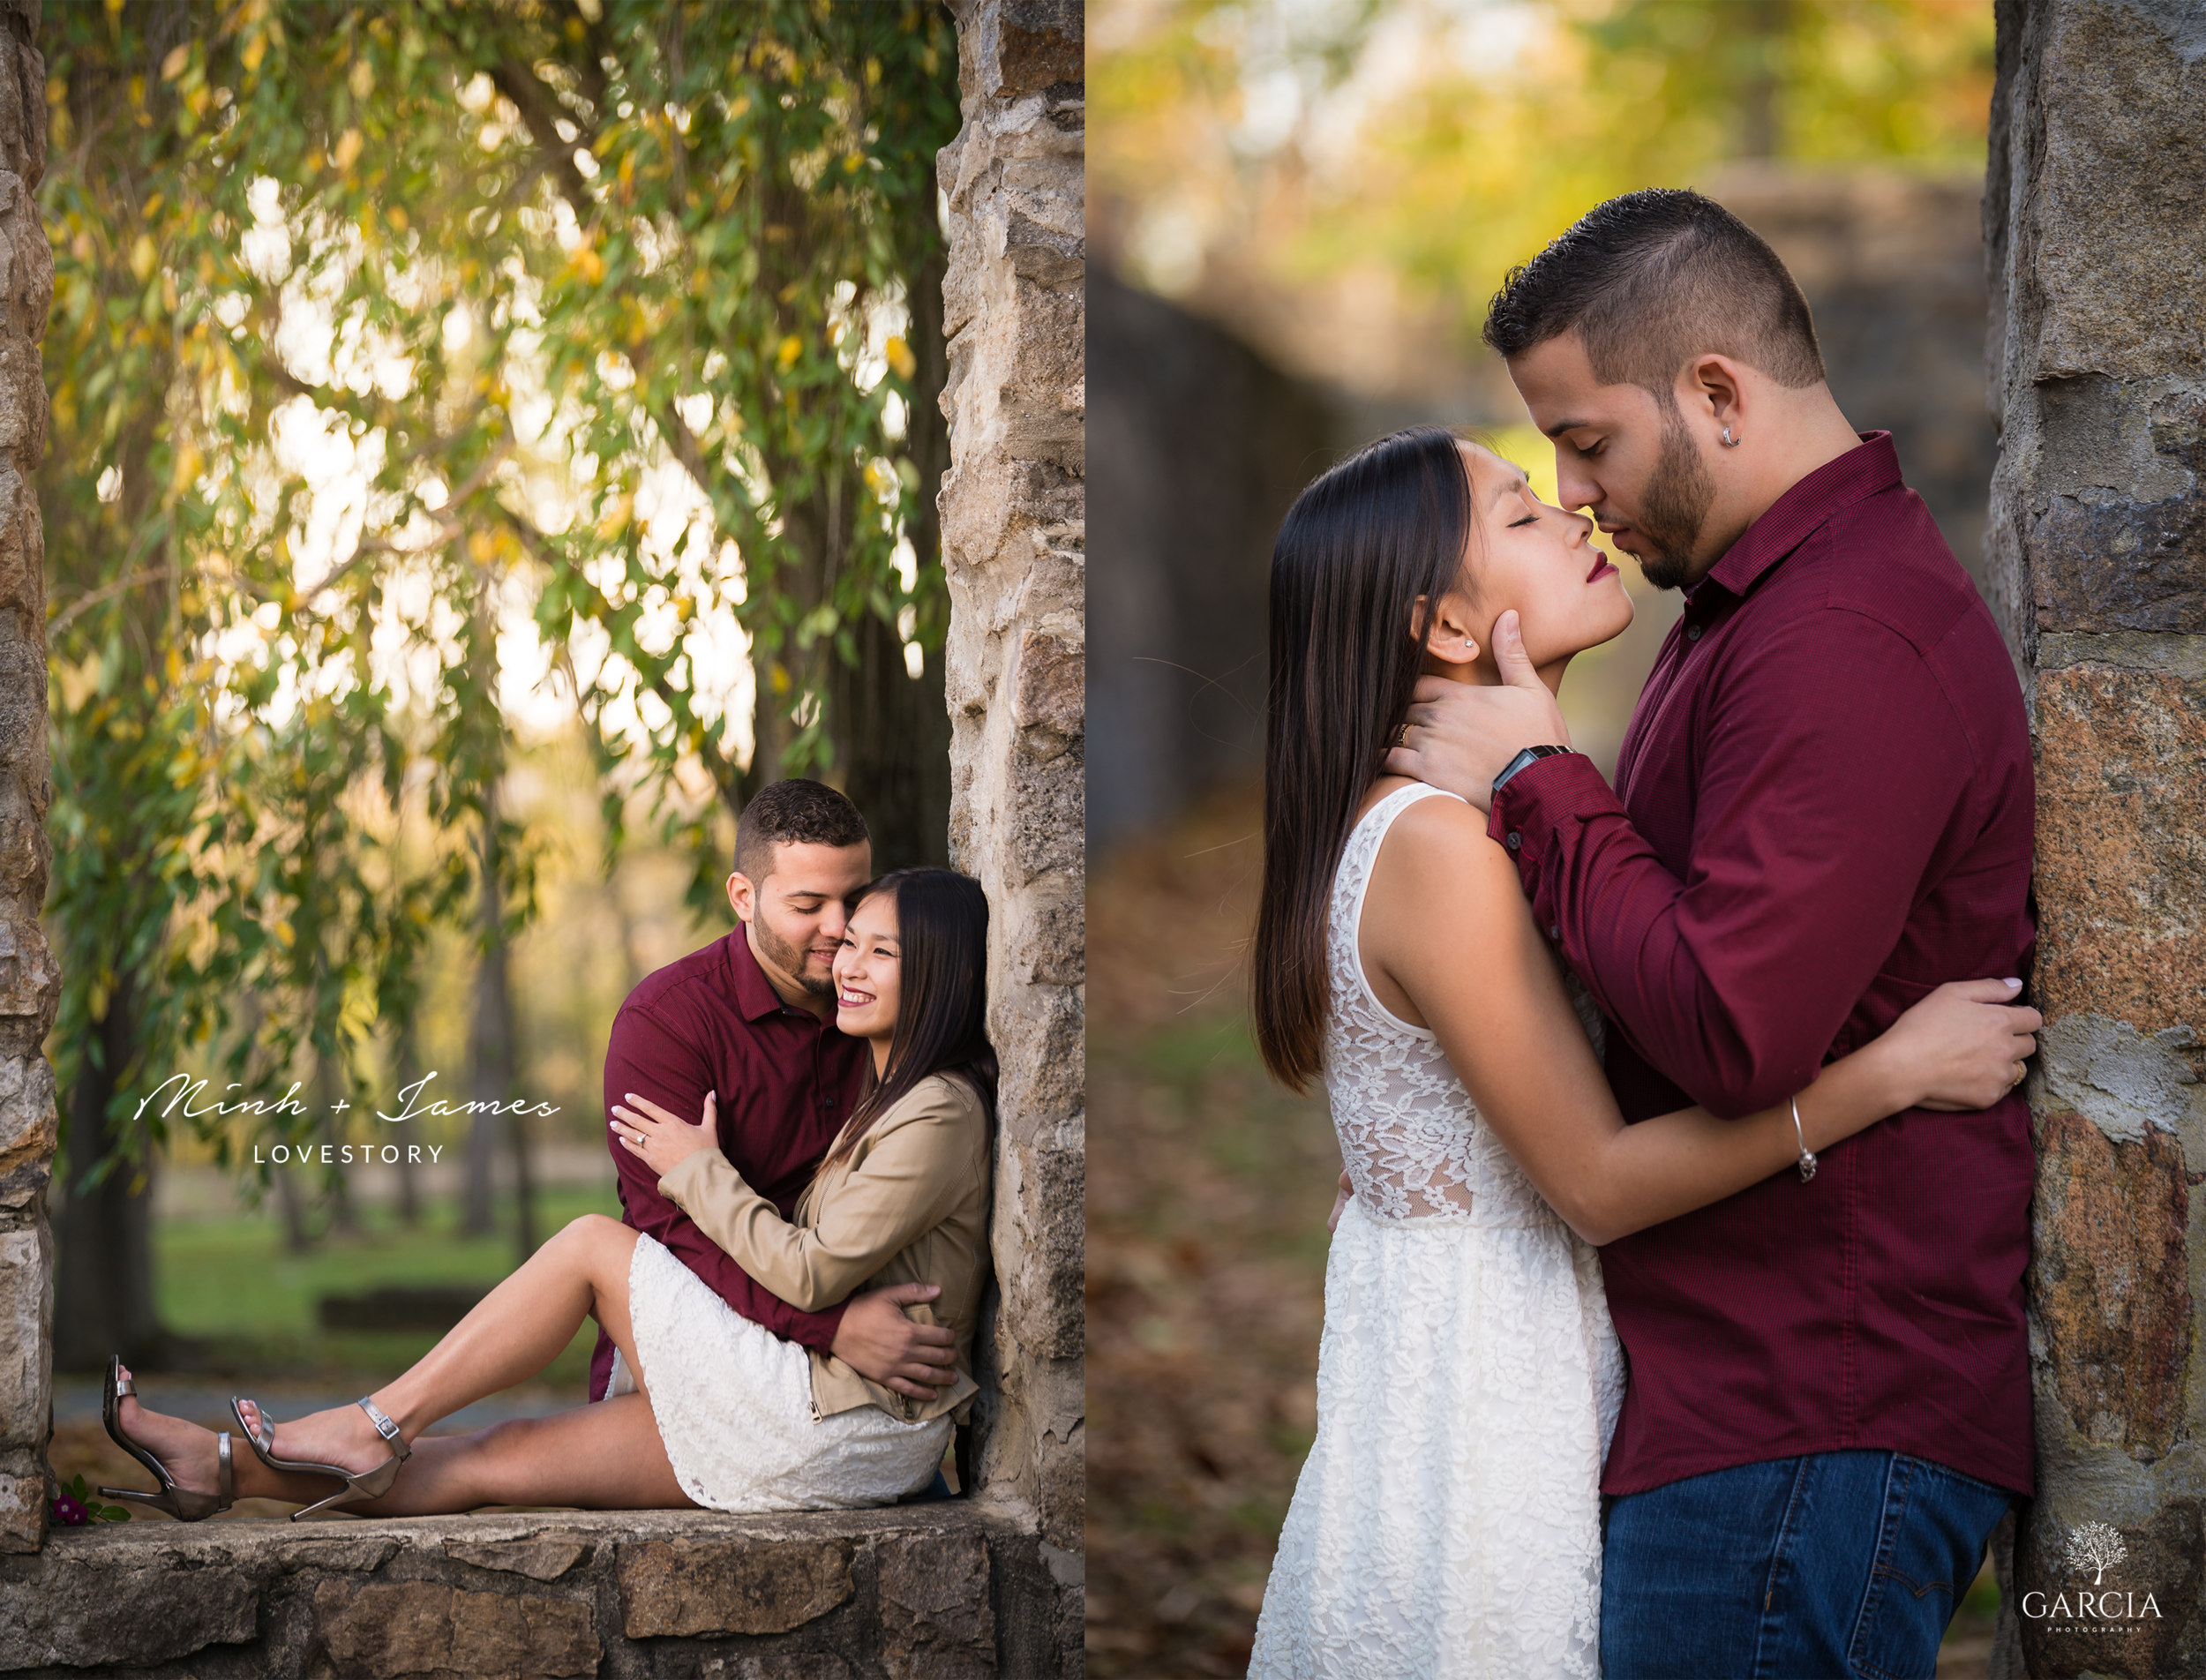 Minh-James-Engagment-Photo